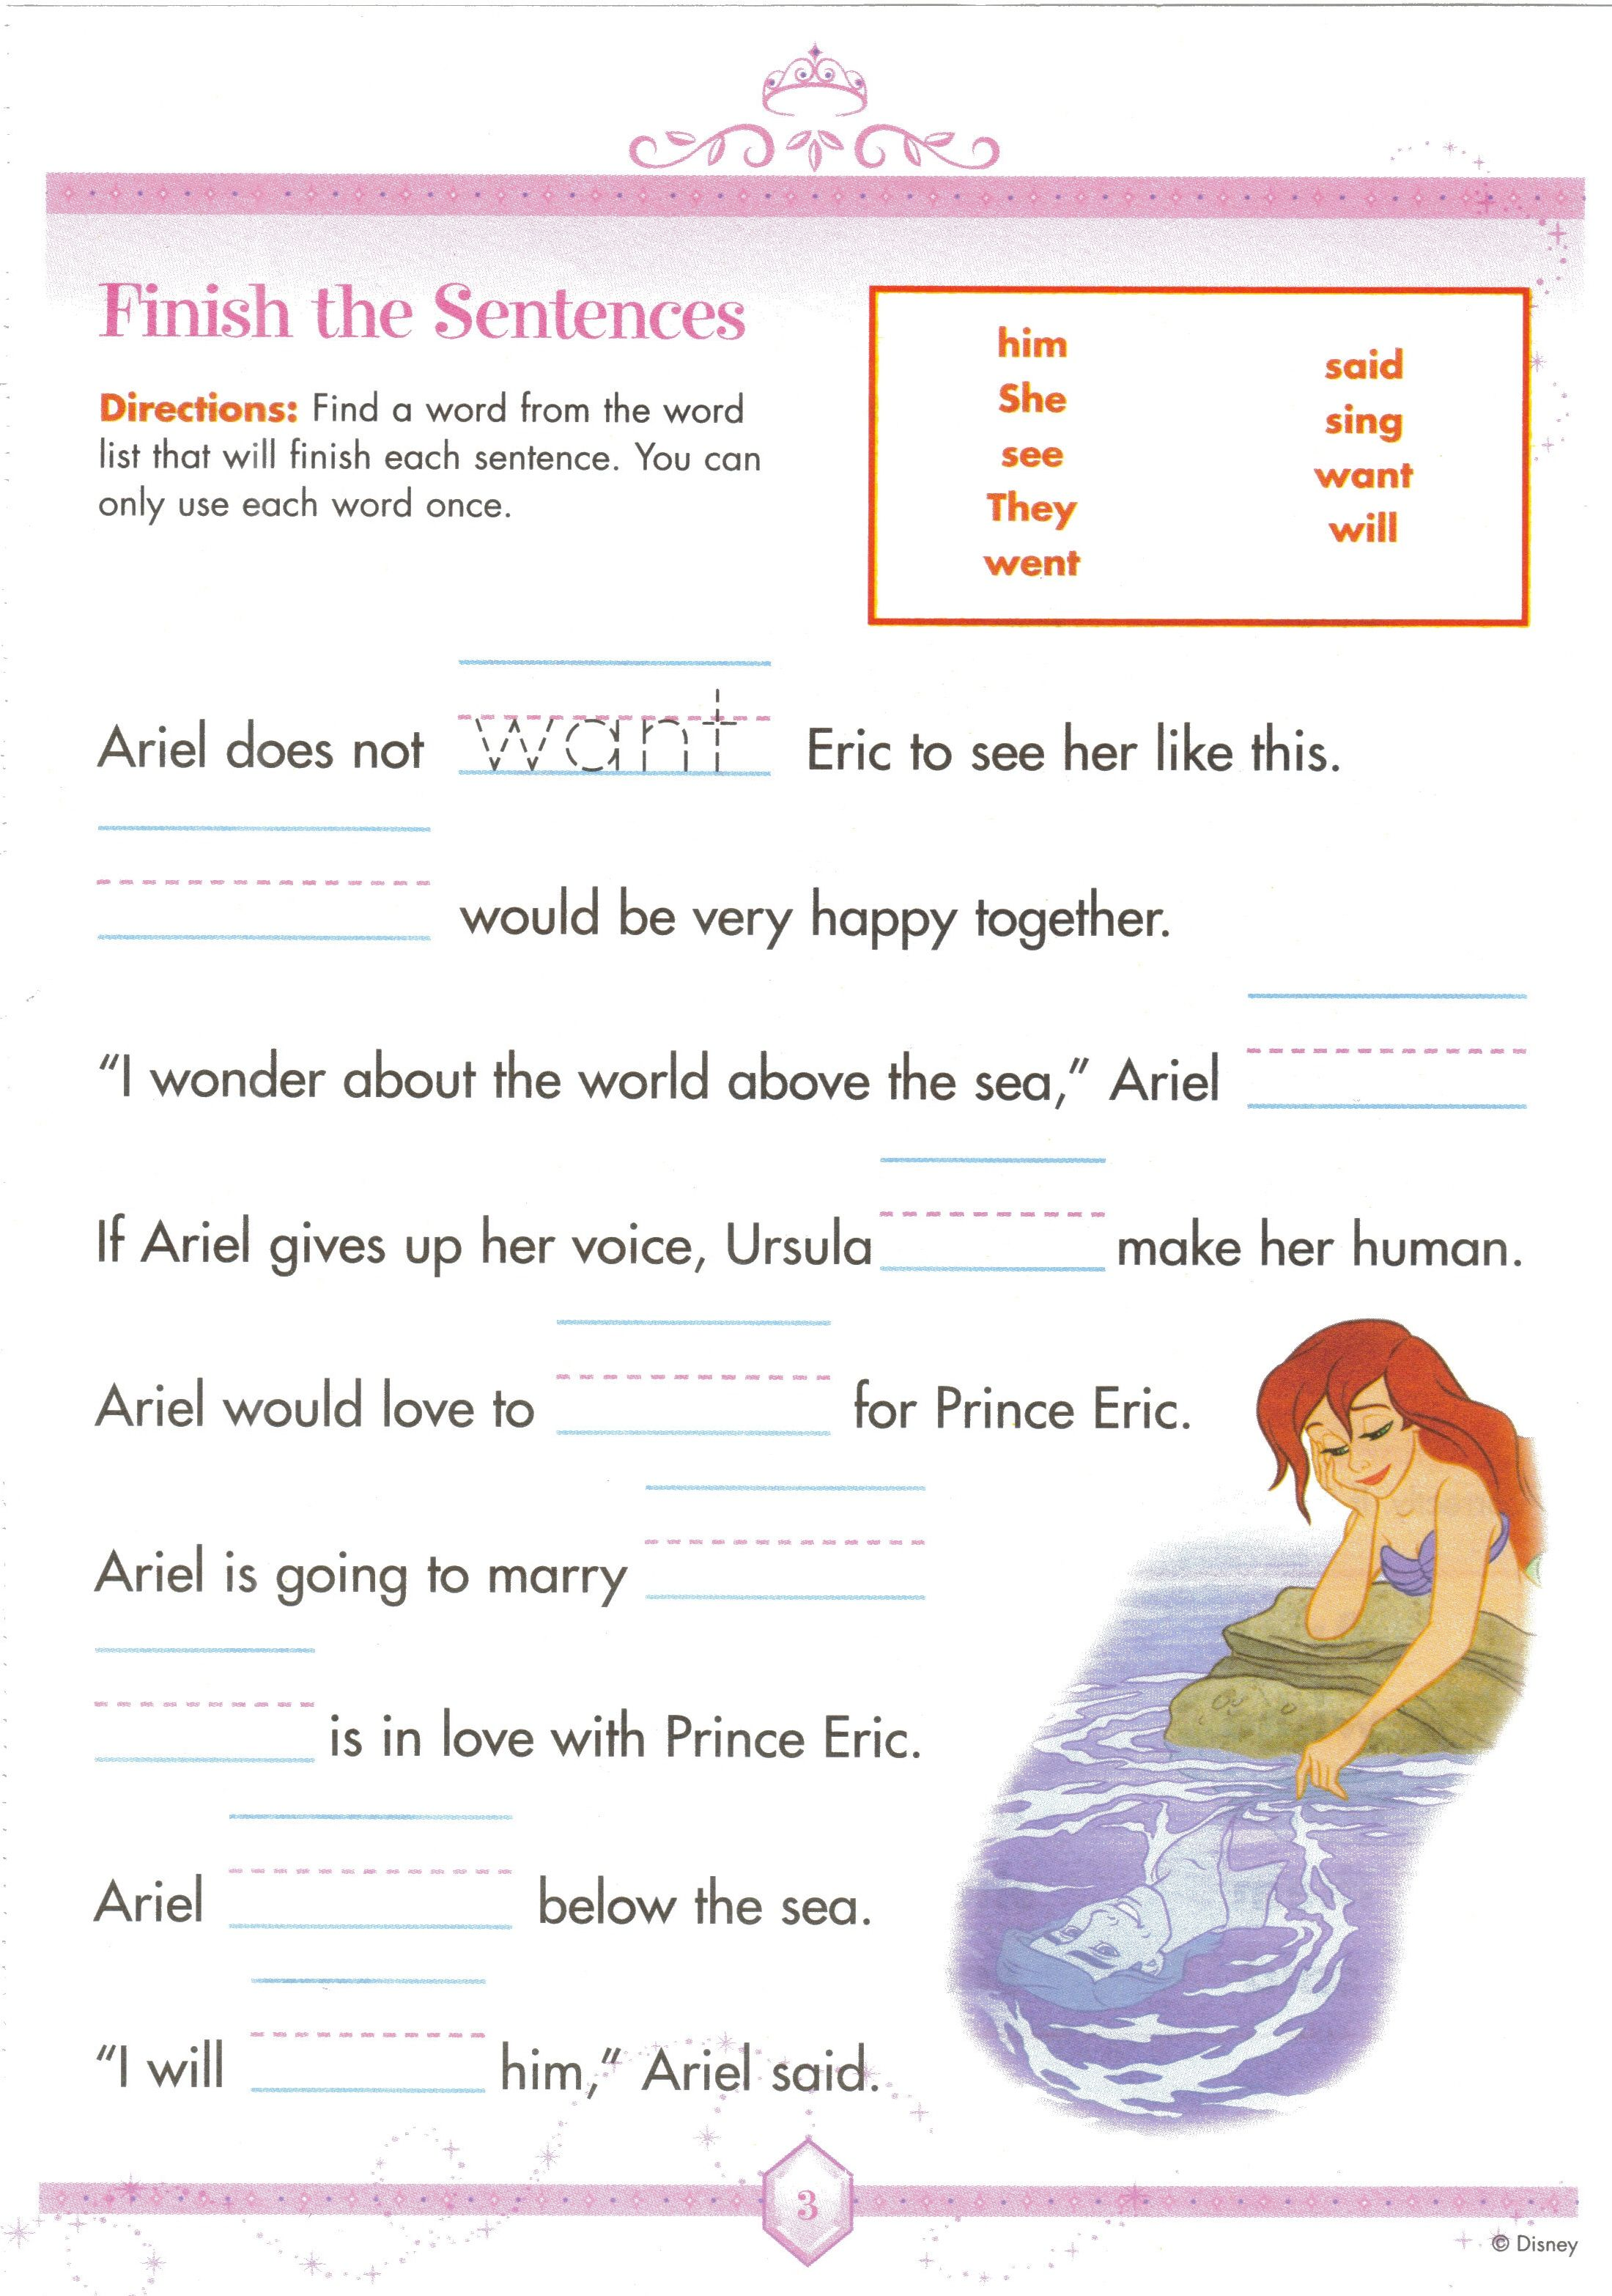 Weirdmailus  Gorgeous  Images About Worksheets On Pinterest  Fun Facts For Kids  With Fetching  Images About Worksheets On Pinterest  Fun Facts For Kids Earth Day Worksheets And Jungles With Lovely Worksheet On Periodic Table Also Spelling And Reading Worksheets In Addition Fl Child Support Worksheet And Kindergarten Morning Worksheets As Well As Reading Goals Worksheet Additionally Quantitative Comparison Worksheets From Pinterestcom With Weirdmailus  Fetching  Images About Worksheets On Pinterest  Fun Facts For Kids  With Lovely  Images About Worksheets On Pinterest  Fun Facts For Kids Earth Day Worksheets And Jungles And Gorgeous Worksheet On Periodic Table Also Spelling And Reading Worksheets In Addition Fl Child Support Worksheet From Pinterestcom